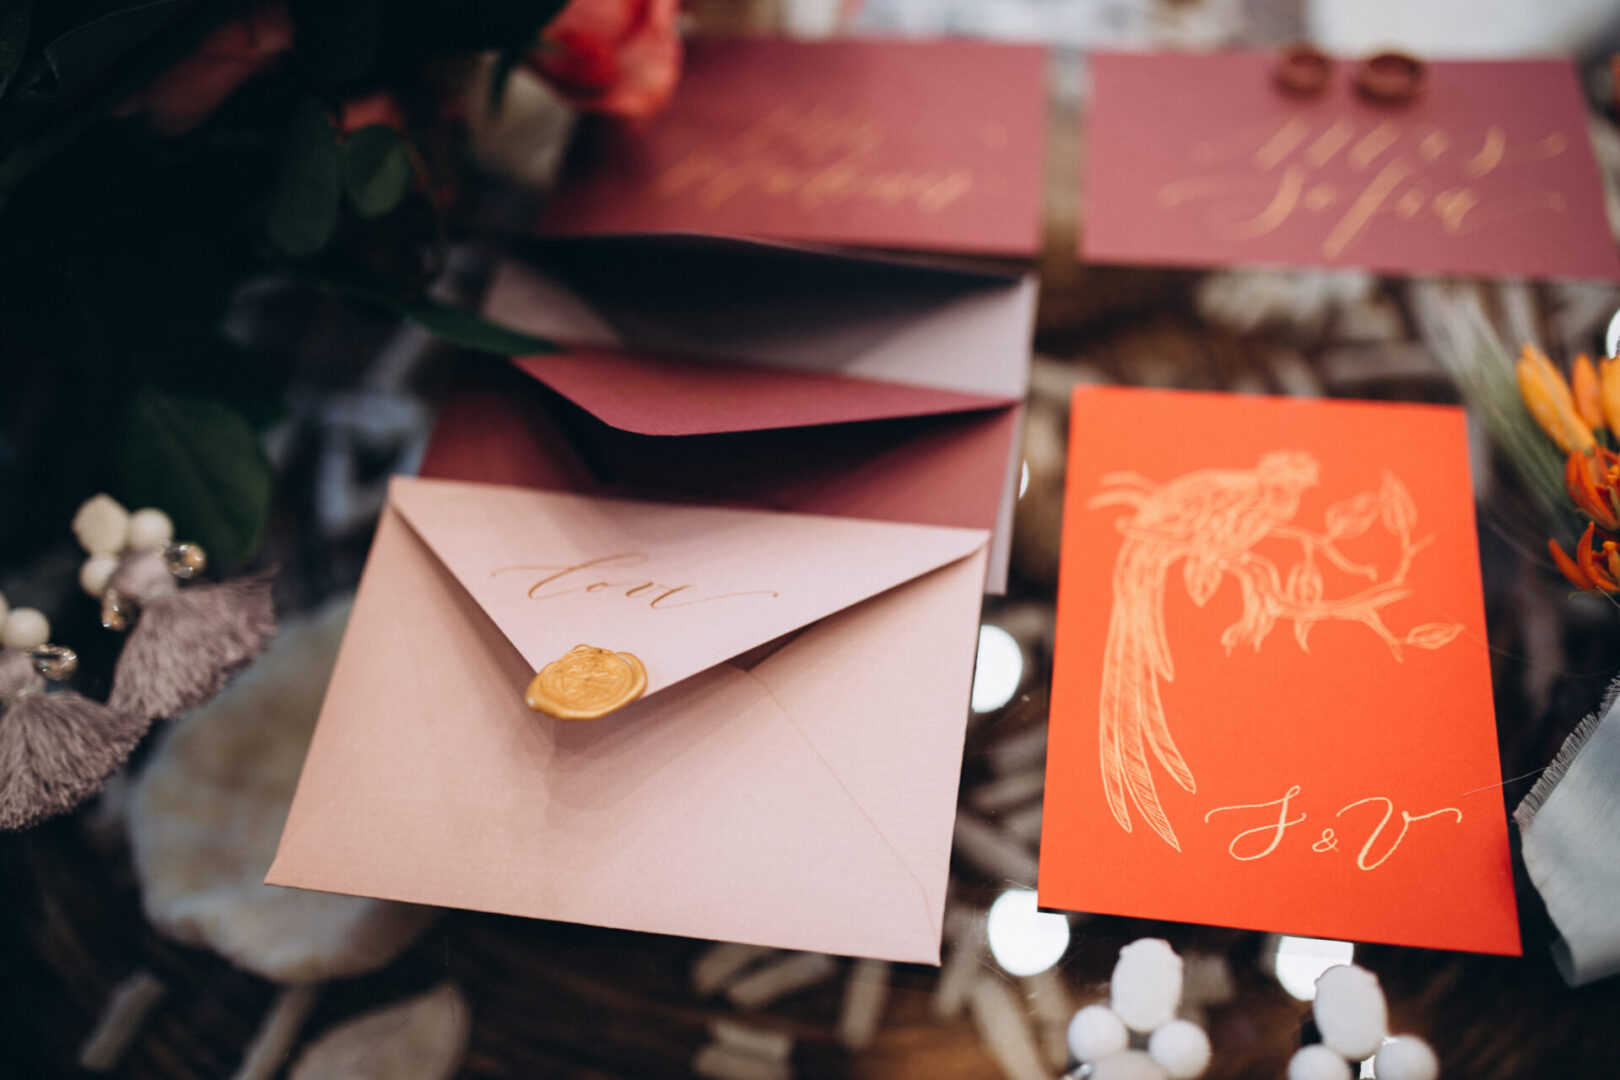 A wedding concept. Invitation and items, Different colored paper envelopes on the table, background.